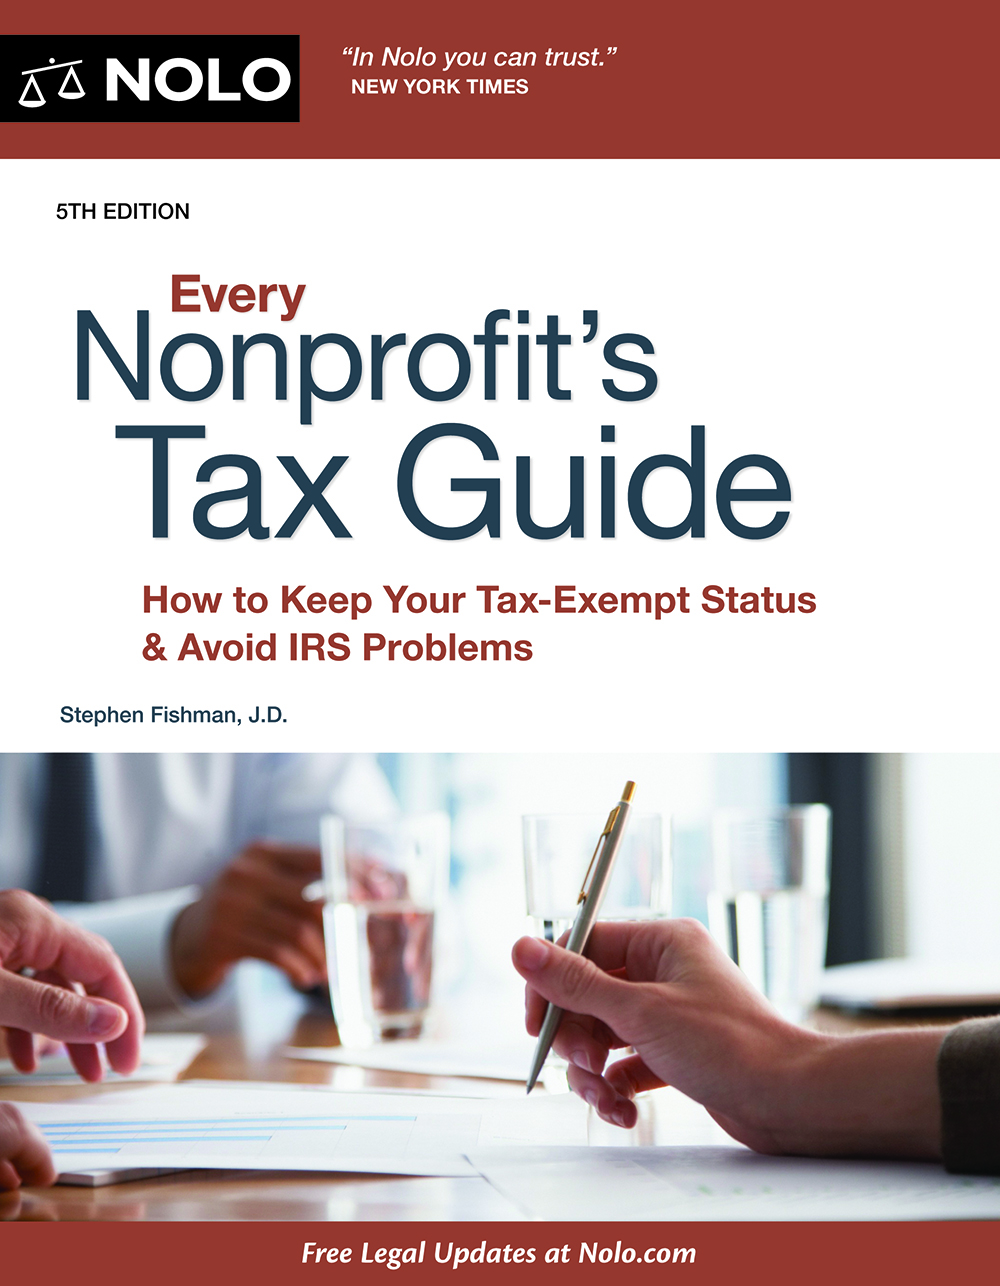 Every Nonprofit's Tax Guide (5th edition) - #4747